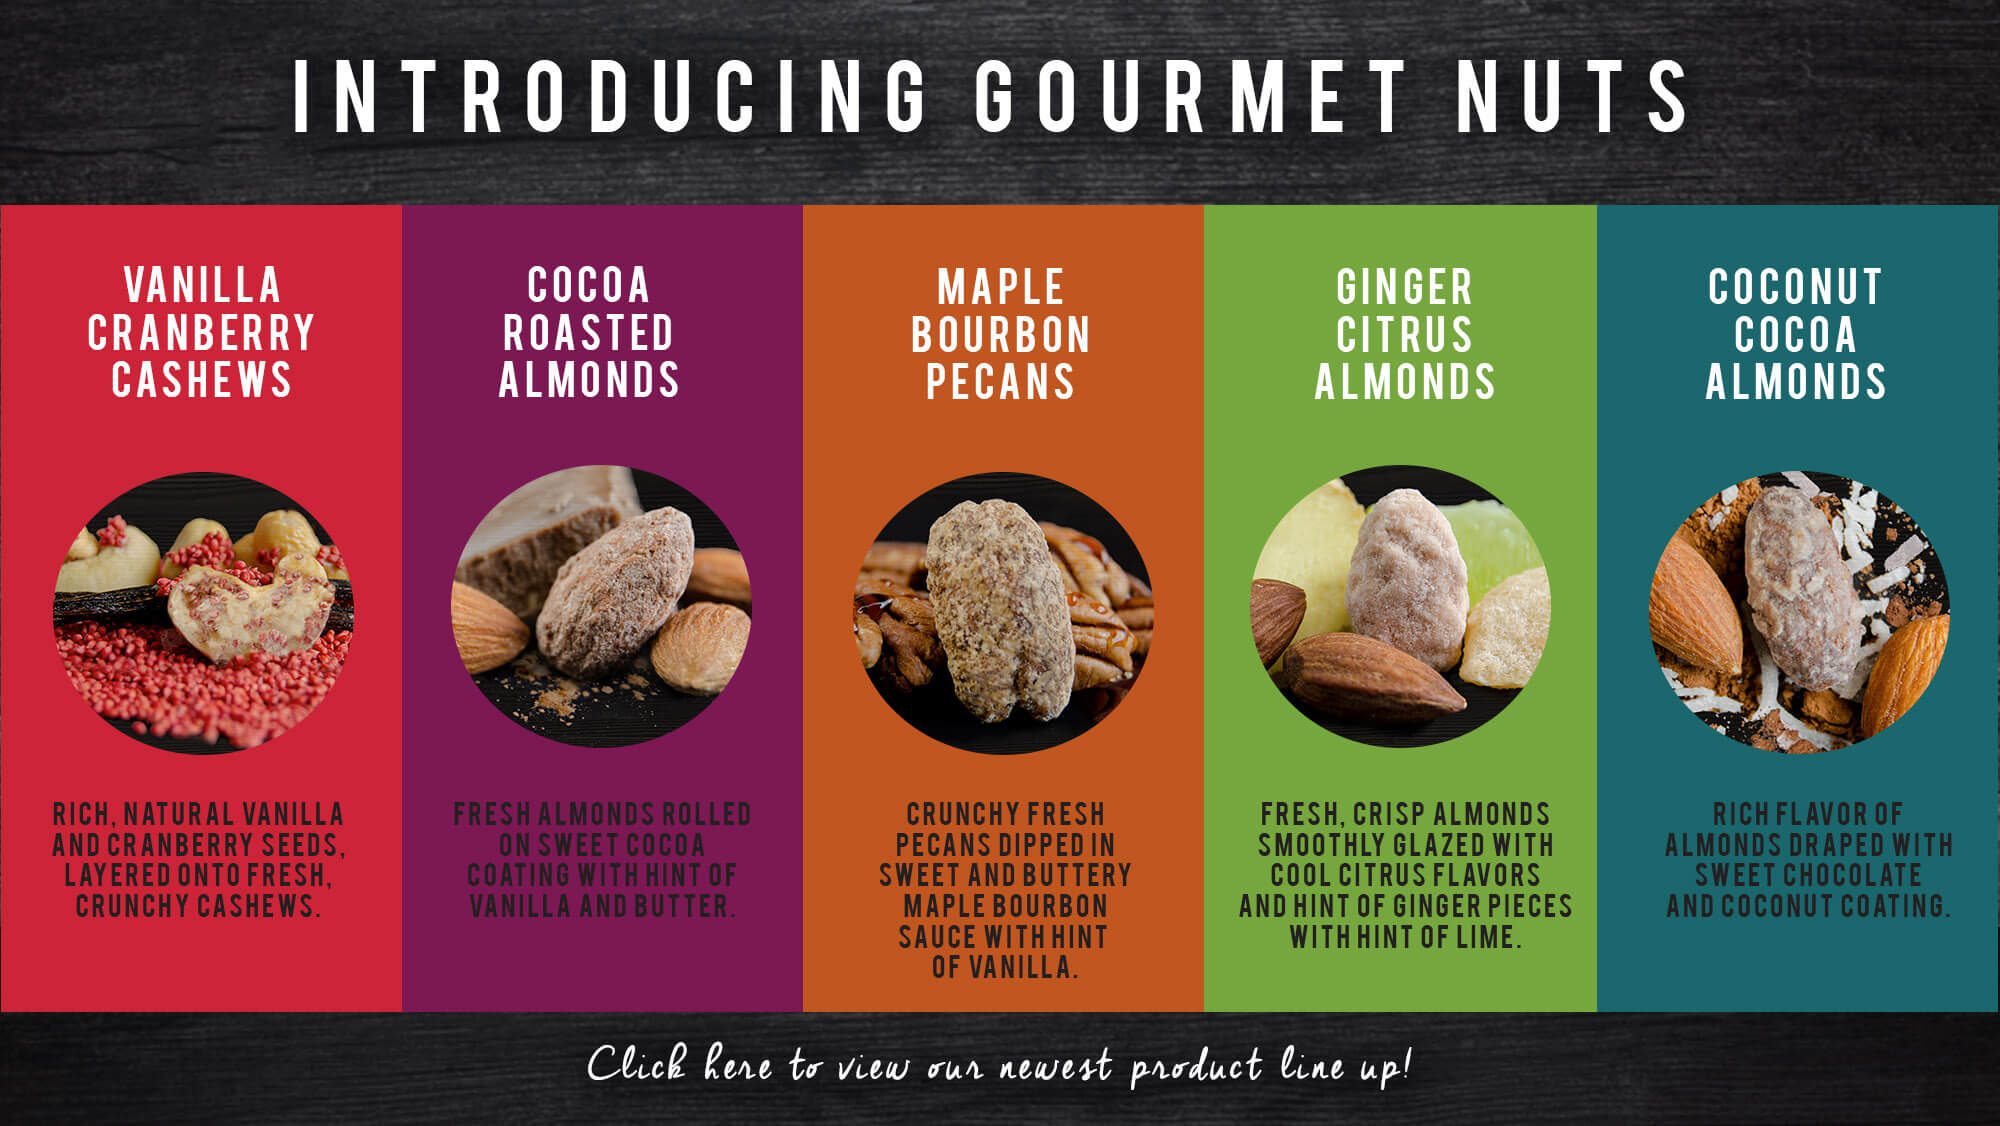 An image chart of our gourmet nuts